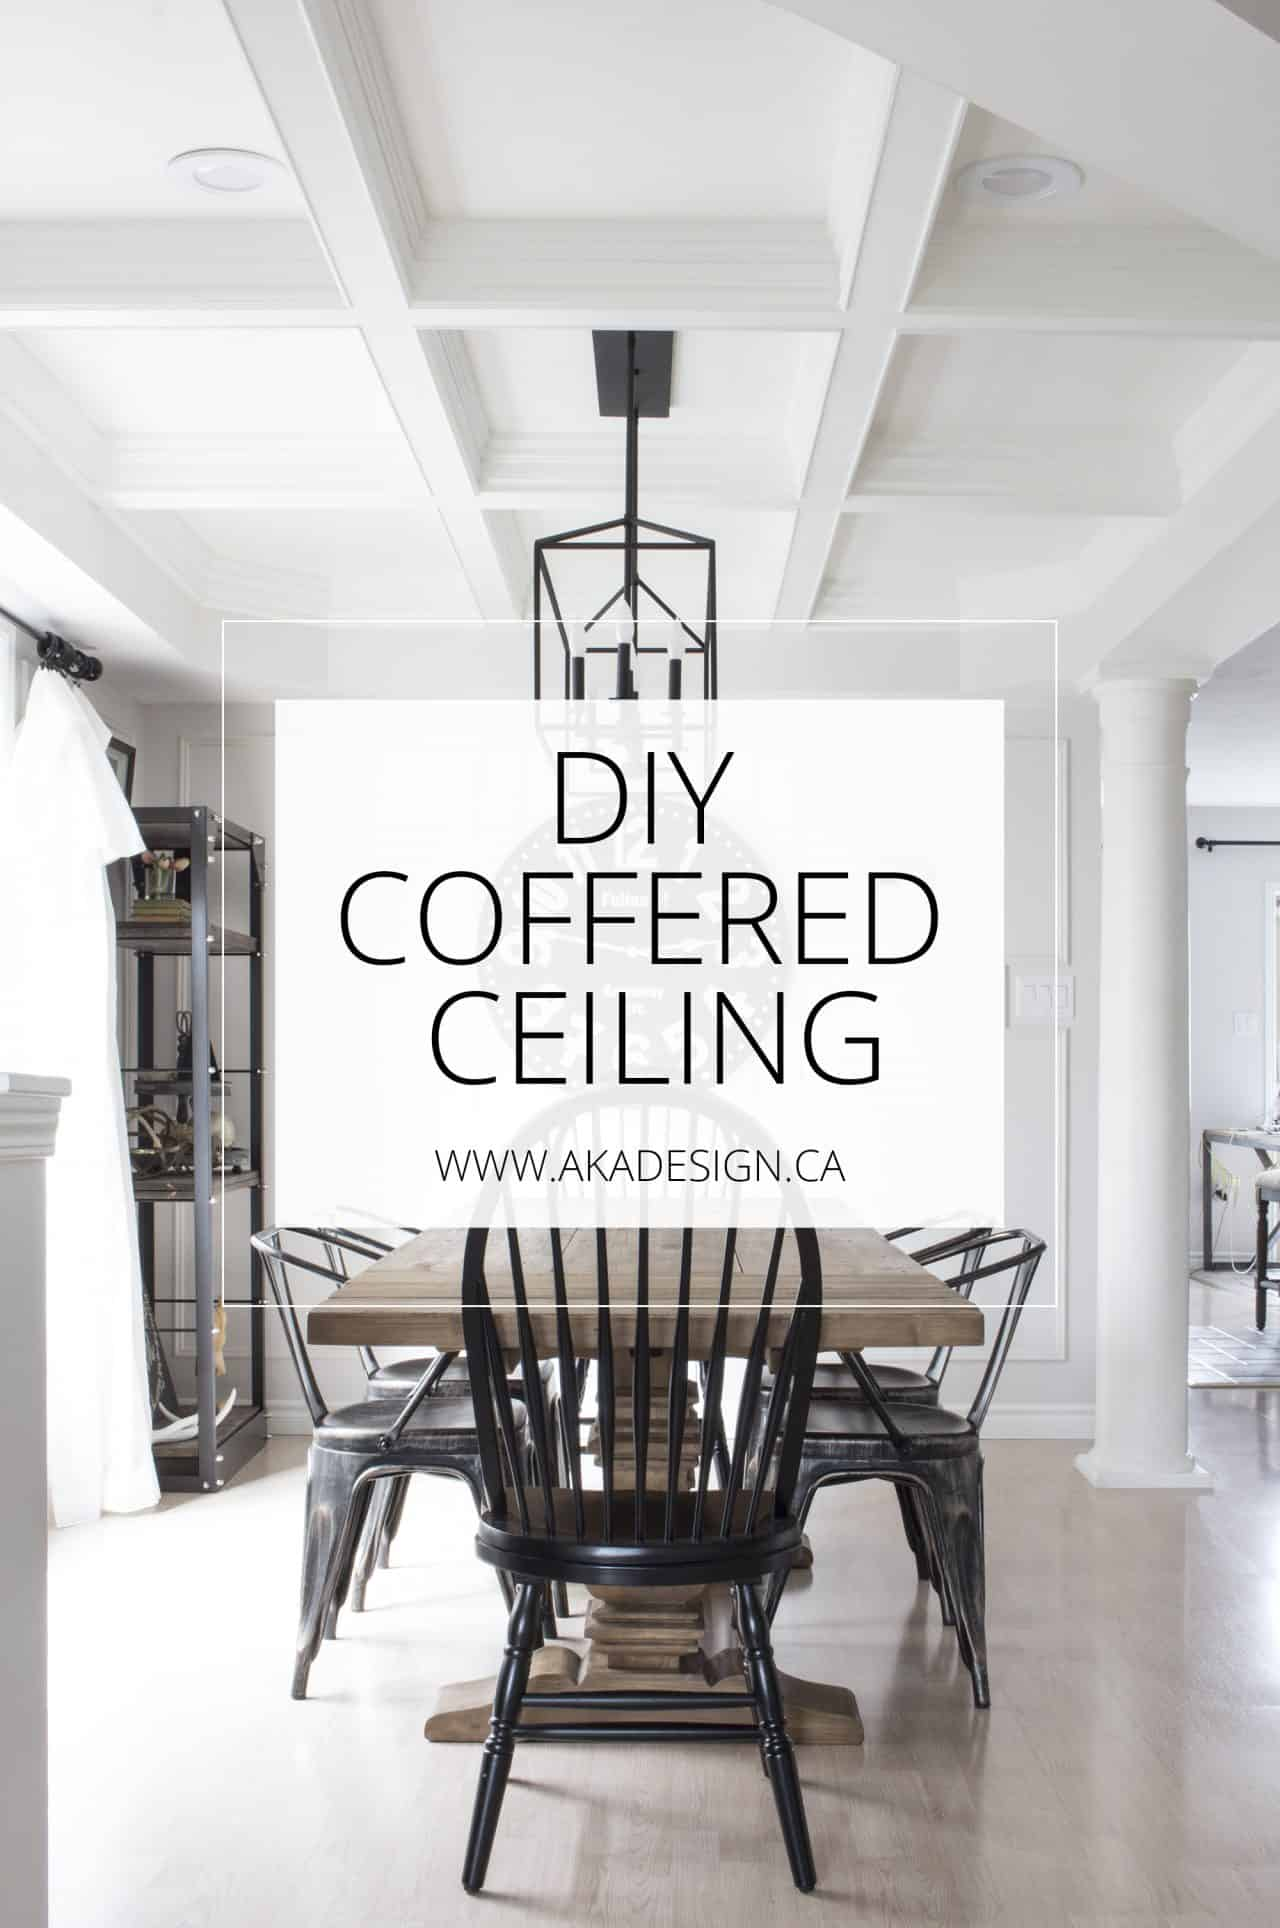 Merveilleux DIY Coffered Ceiling   How To DIY A Professional Looking Coffered Ceiling  For Less Than $500!